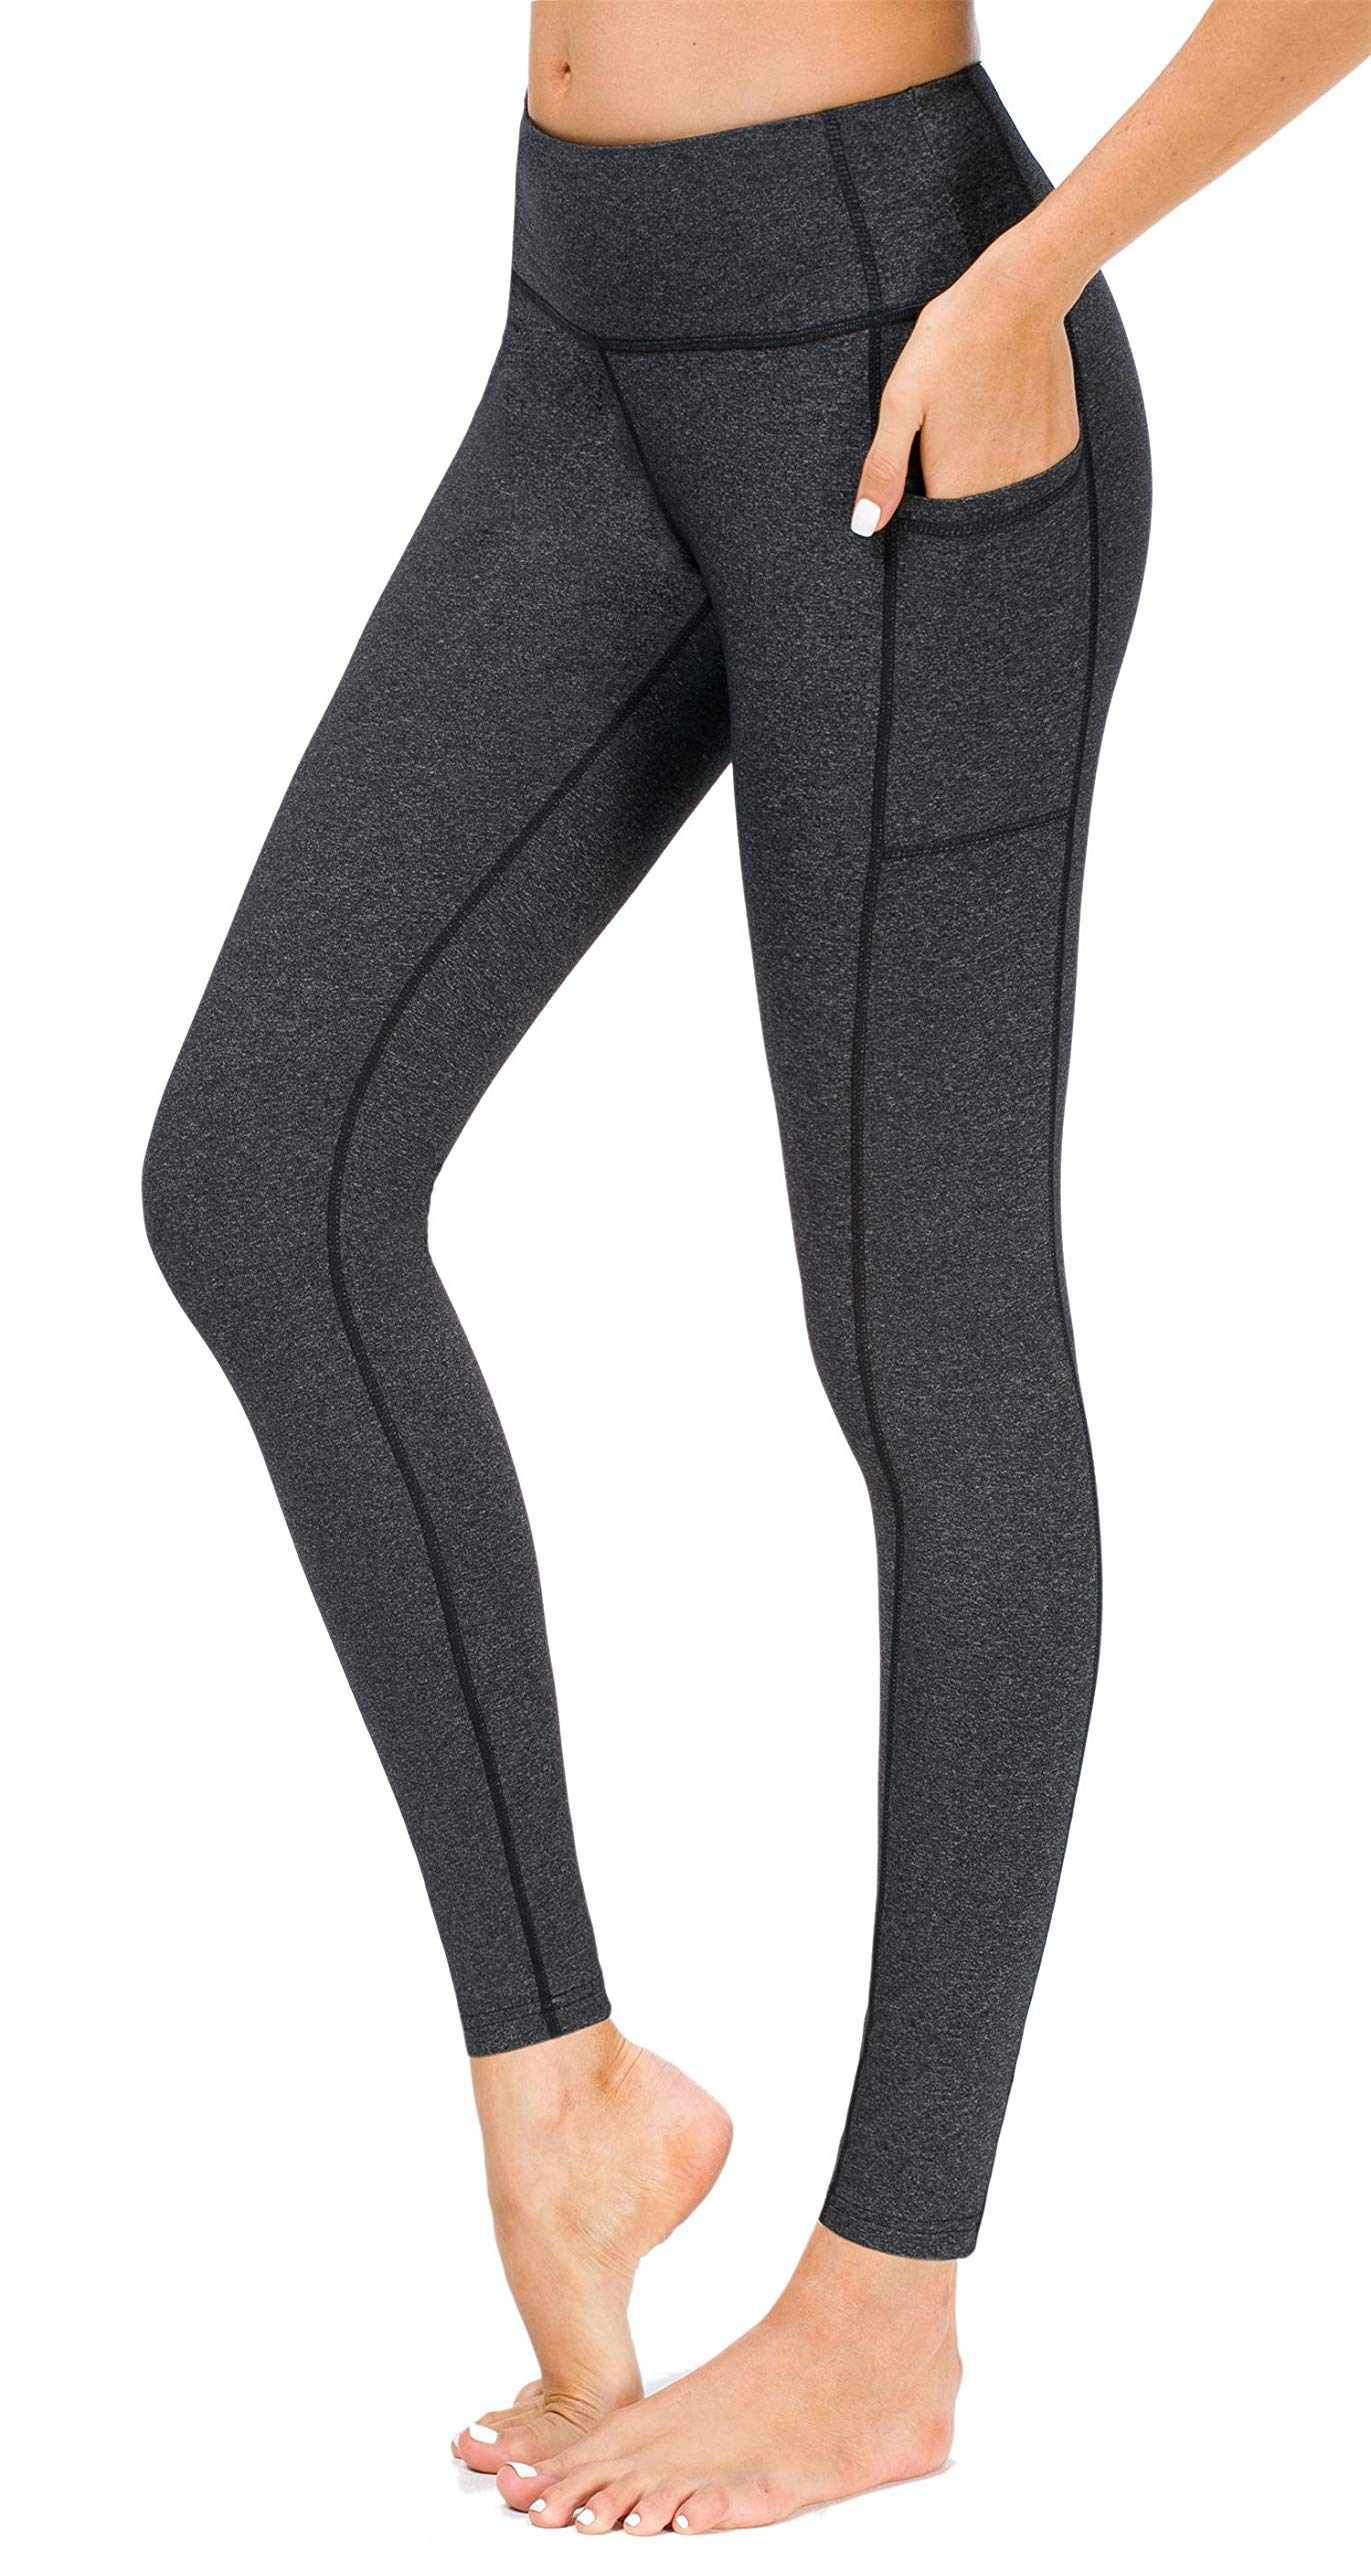 8cb4ad209d Sugar Pocket Women's Yoga Leggings Fitness Tights Workout Pants Gym Leggings  with Side Pocket product image